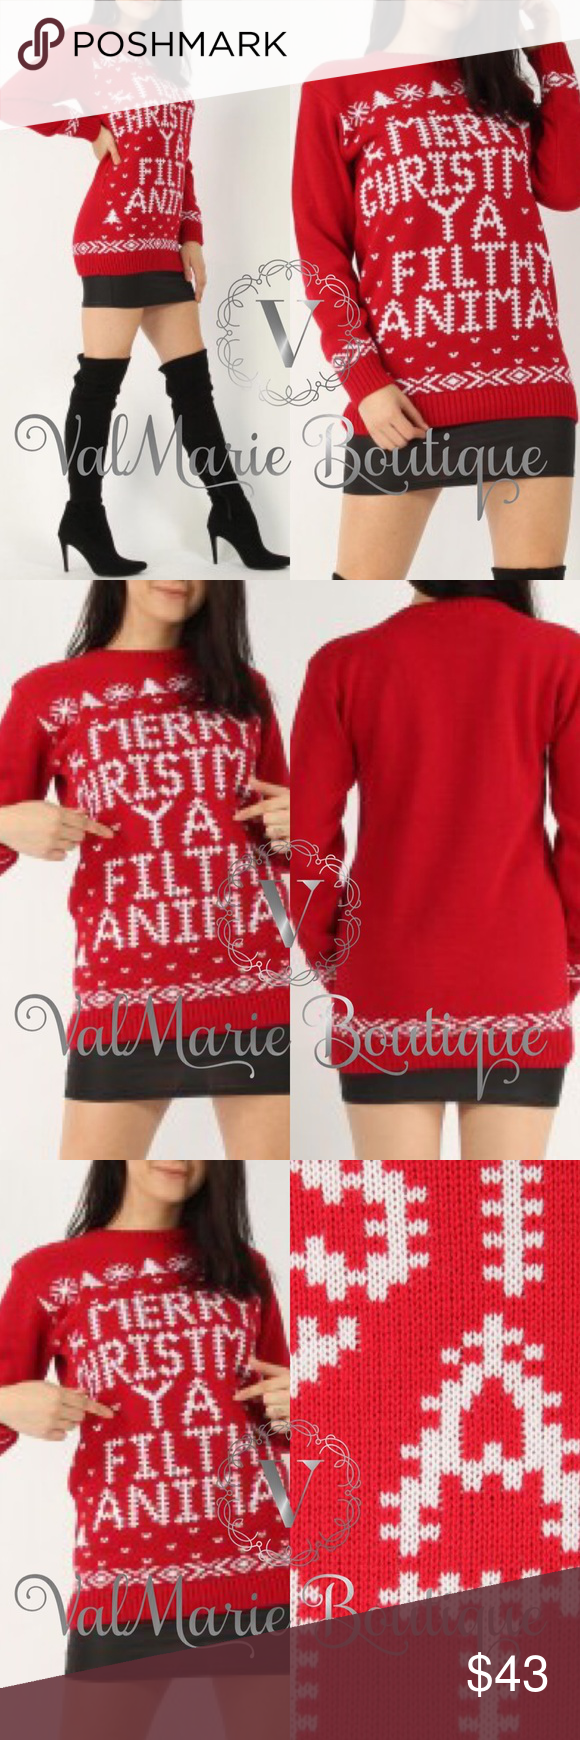 Final Pricemerry Christmas You Filthy Animal Boutique